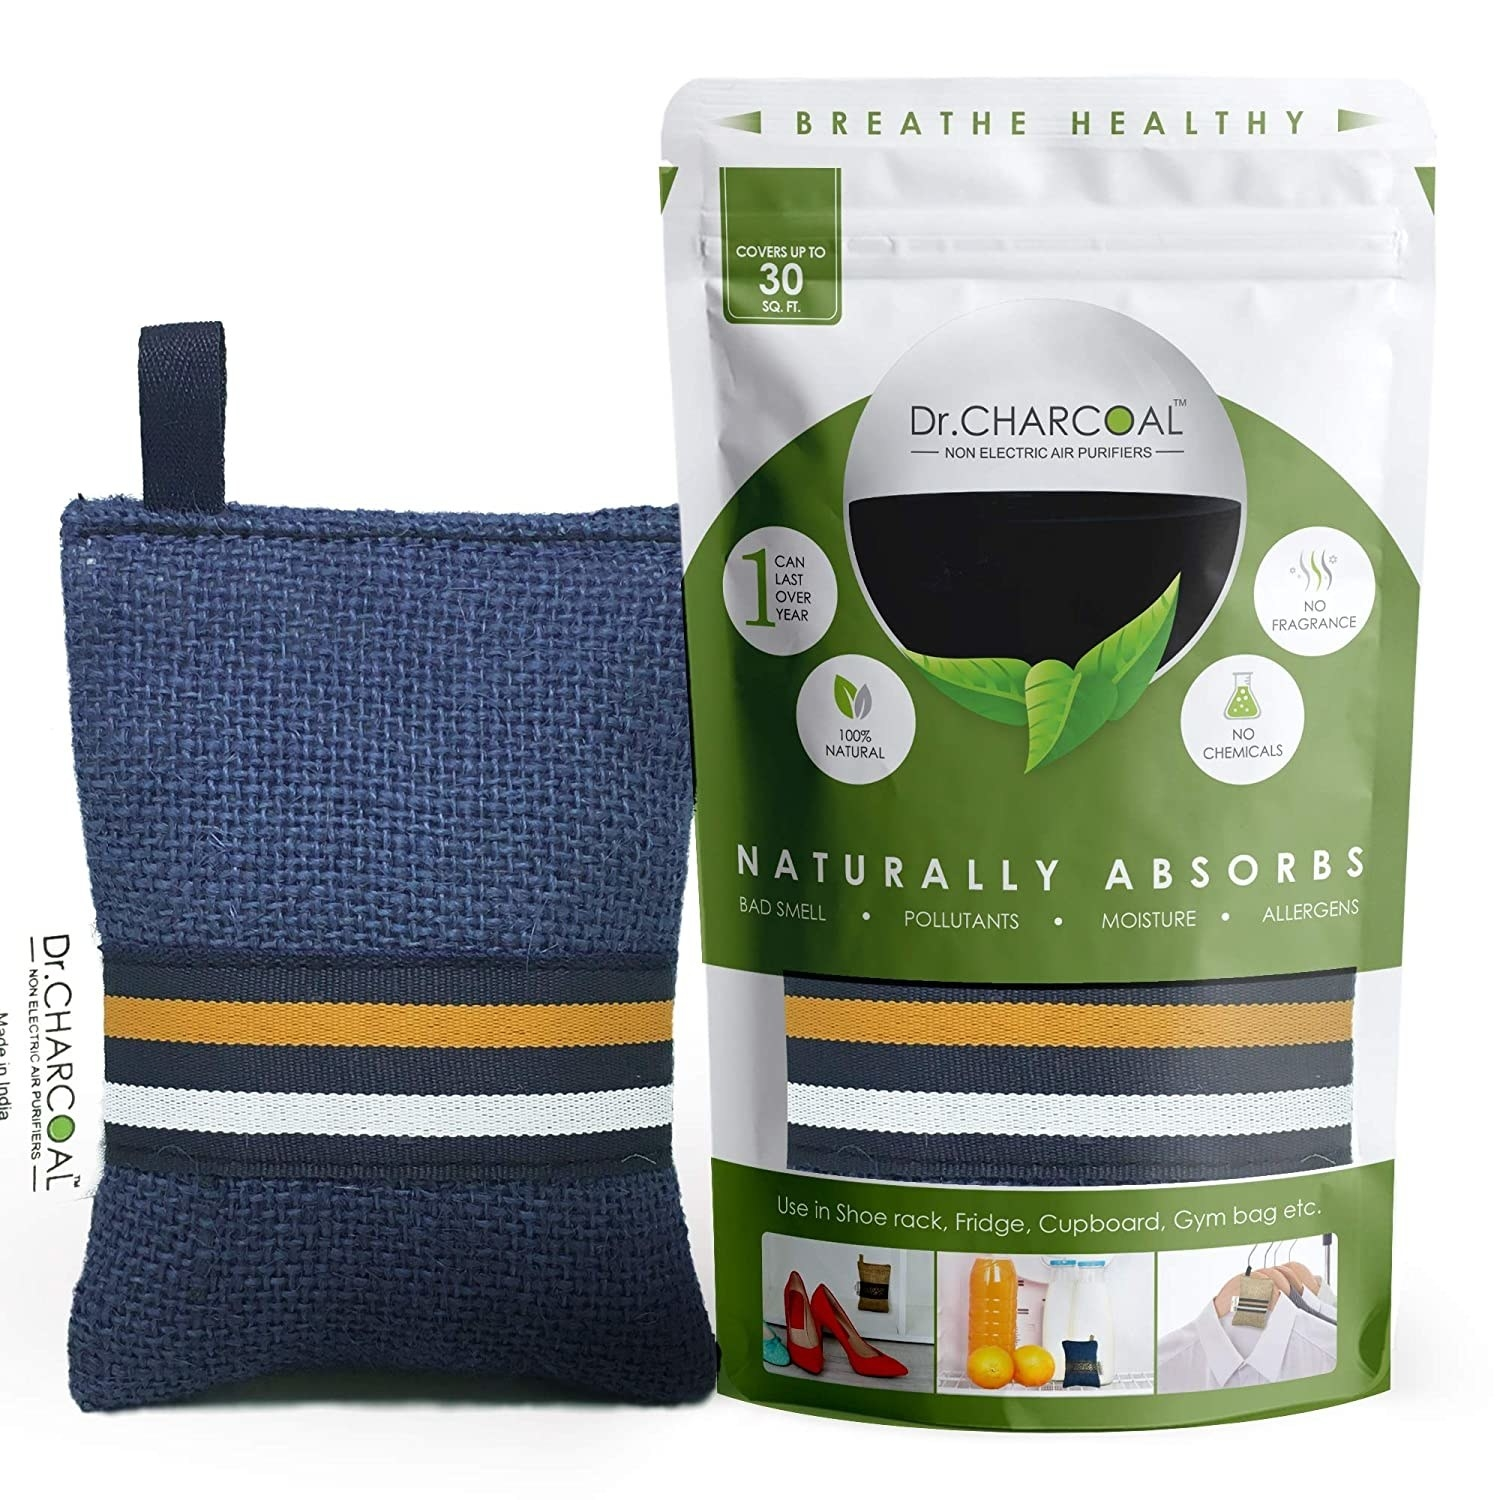 Blue pouch of non-electric charcoal air purifier